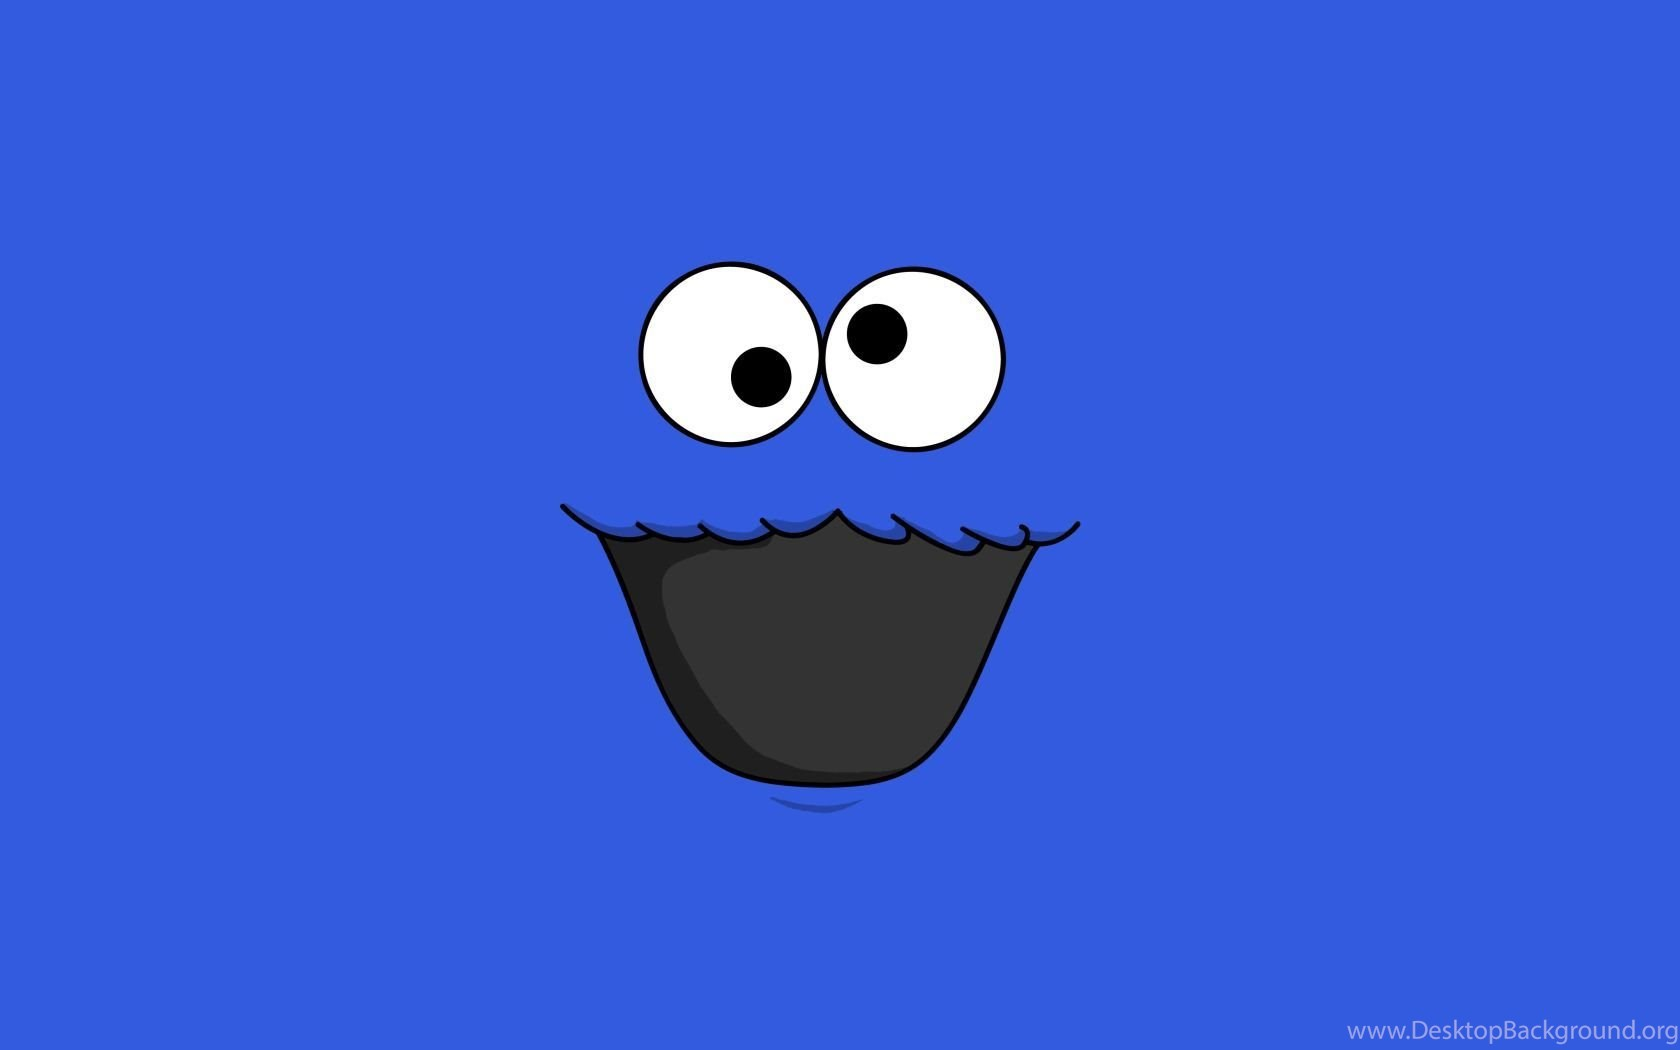 Download Cartoon Network Character Animated Images Hd Free